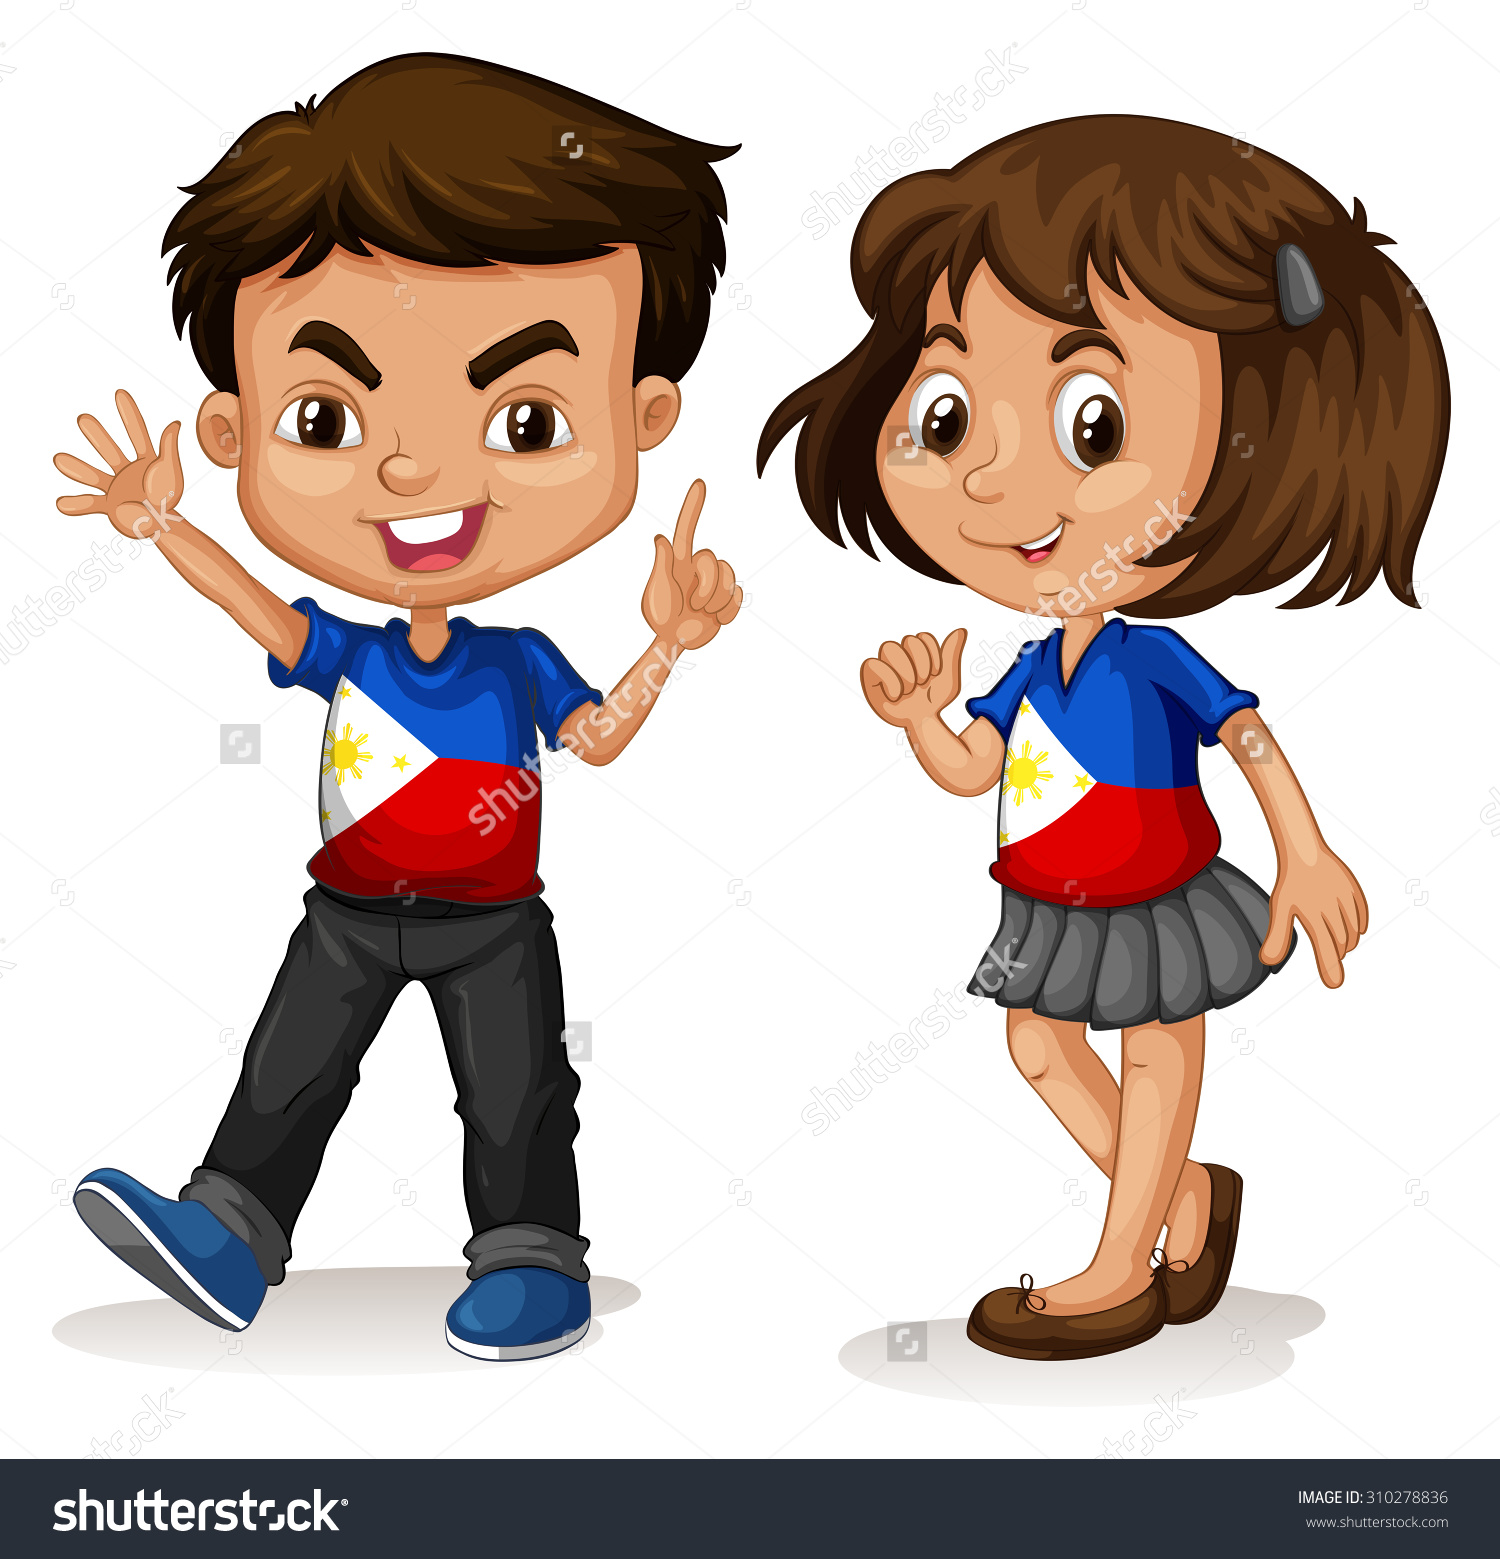 Cute Girl And Boy Animated Wallpaper Filipino Girl Clipart 20 Free Cliparts Download Images